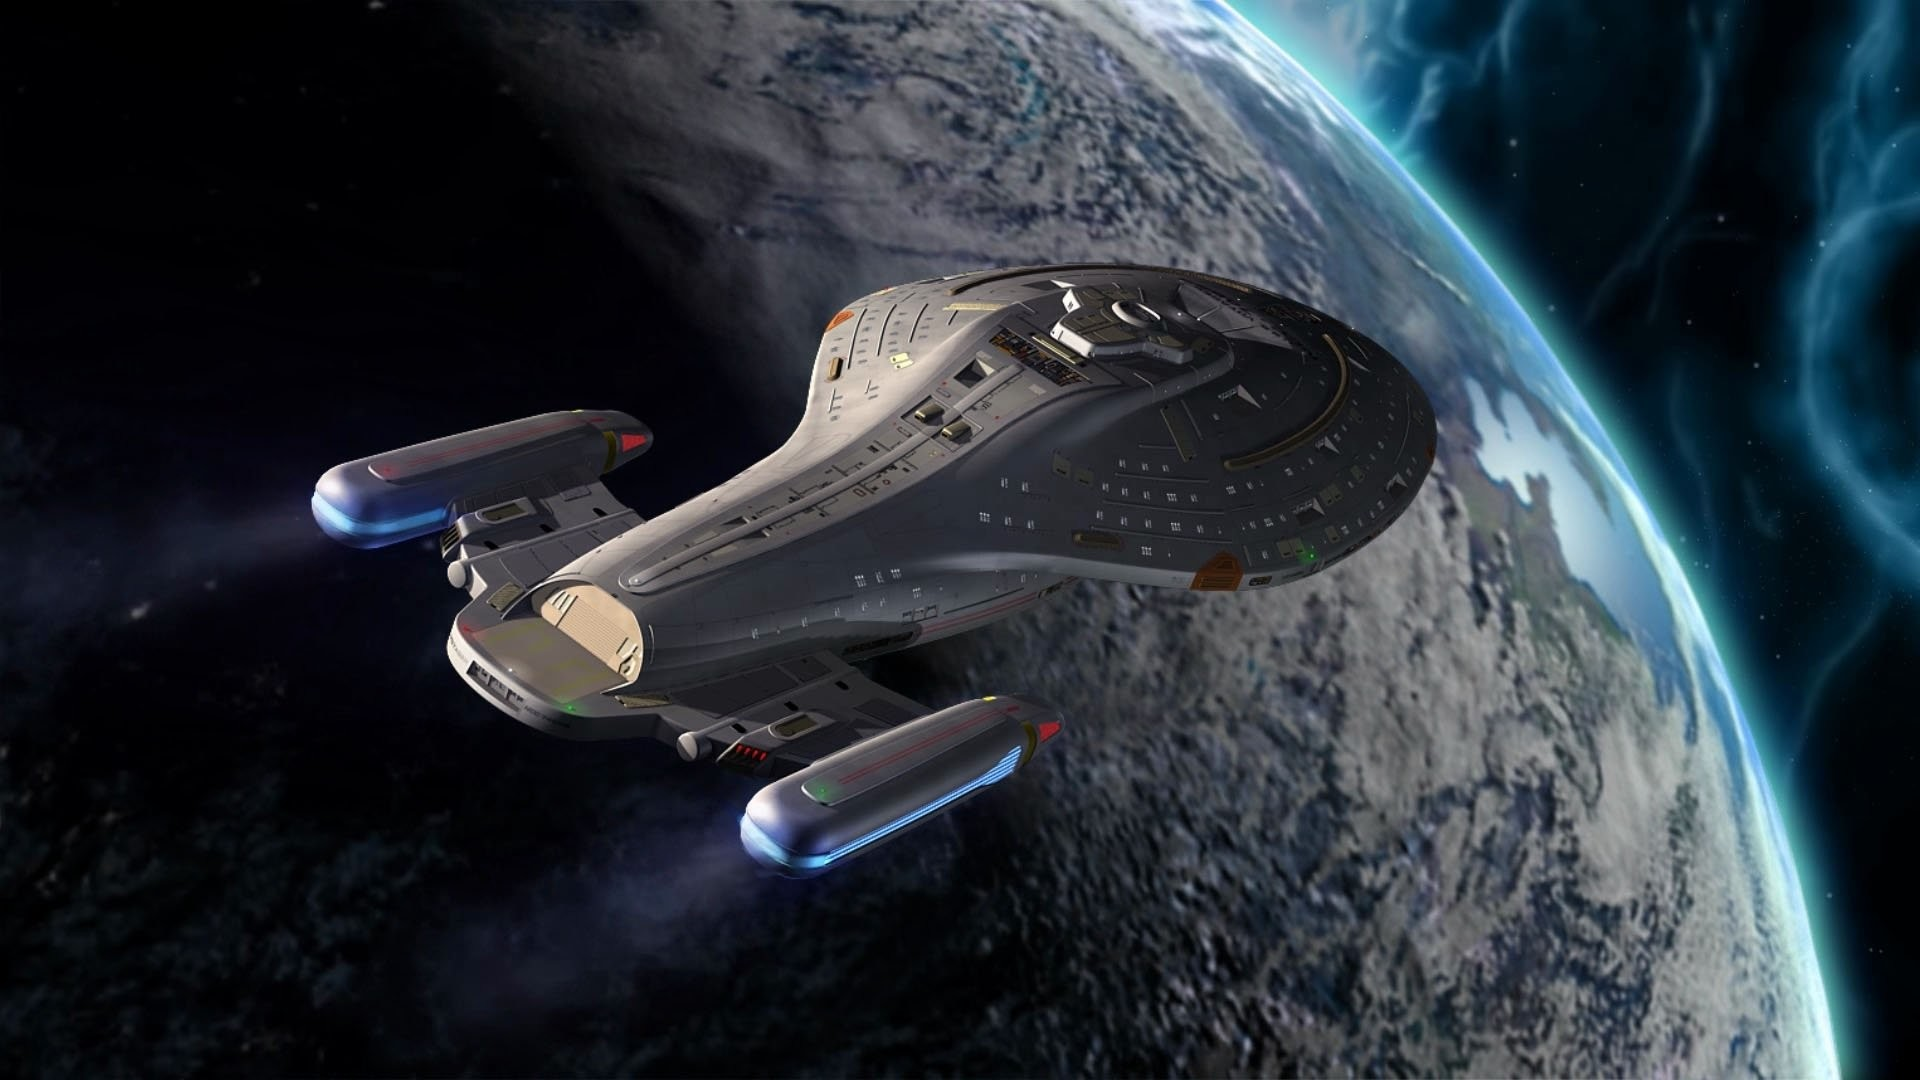 1920x1080 HD Wallpaper | Background Image ID:124794.  Sci Fi Star Trek